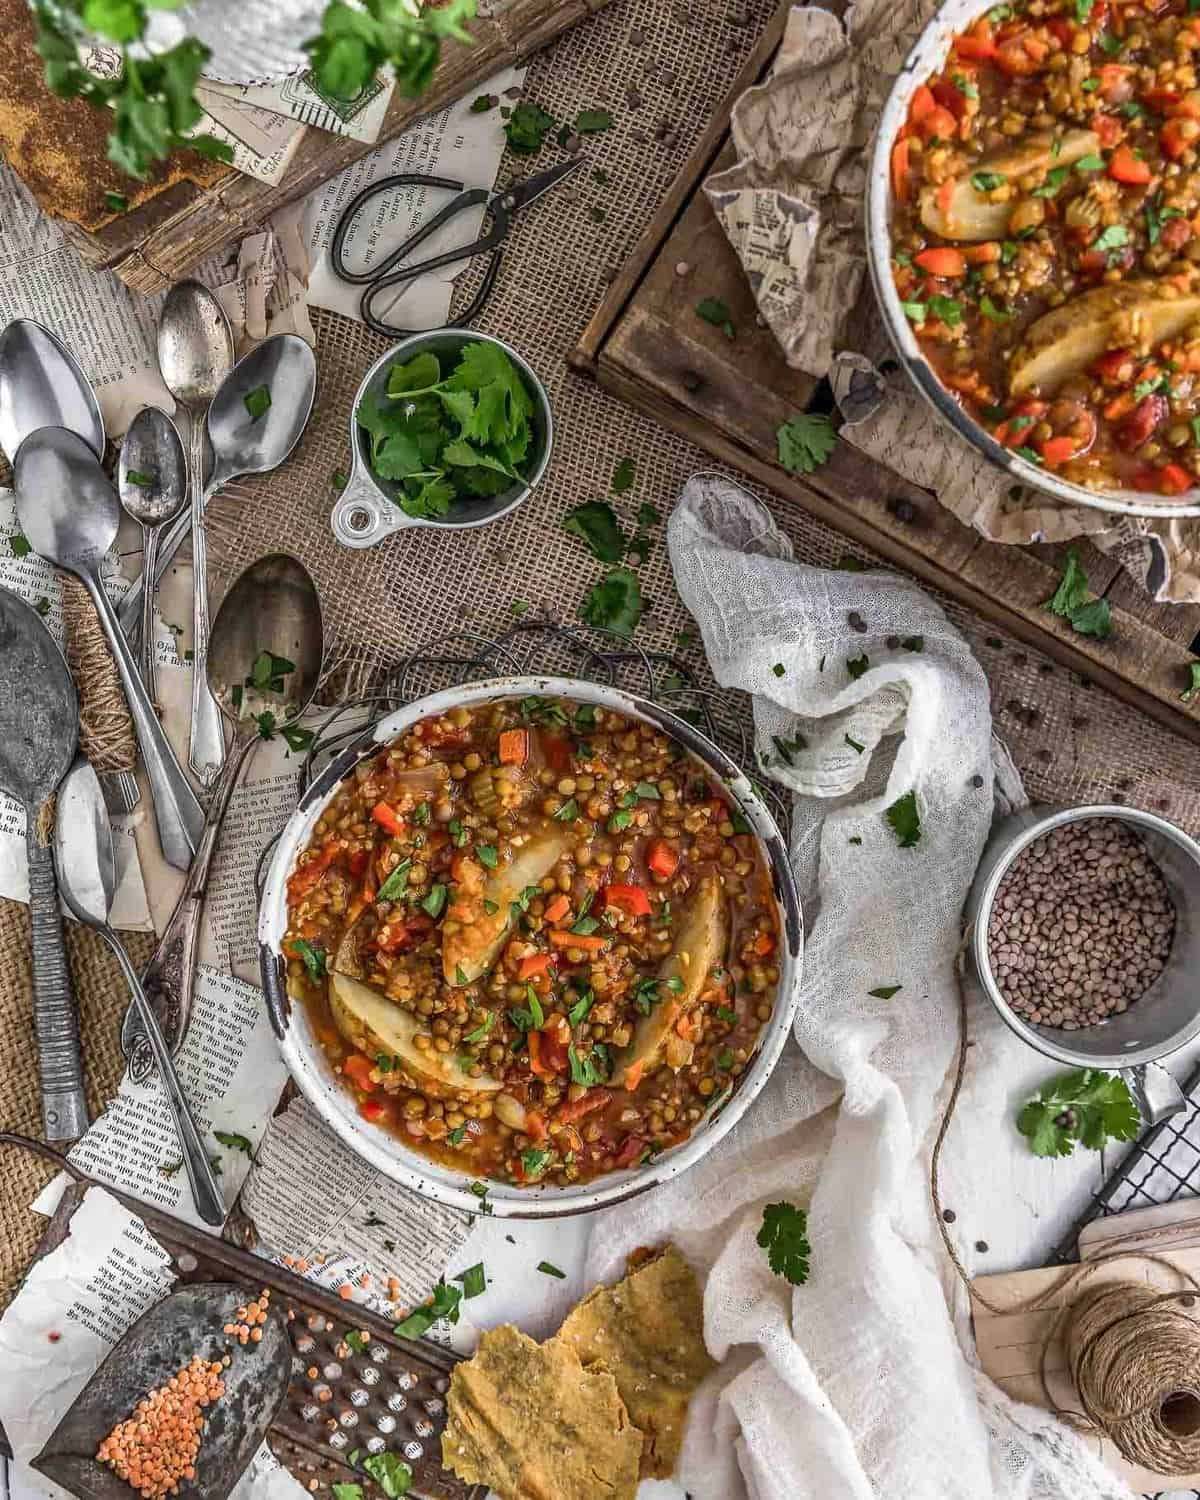 Tablescape of Vegan Two Lentil Potato Stew